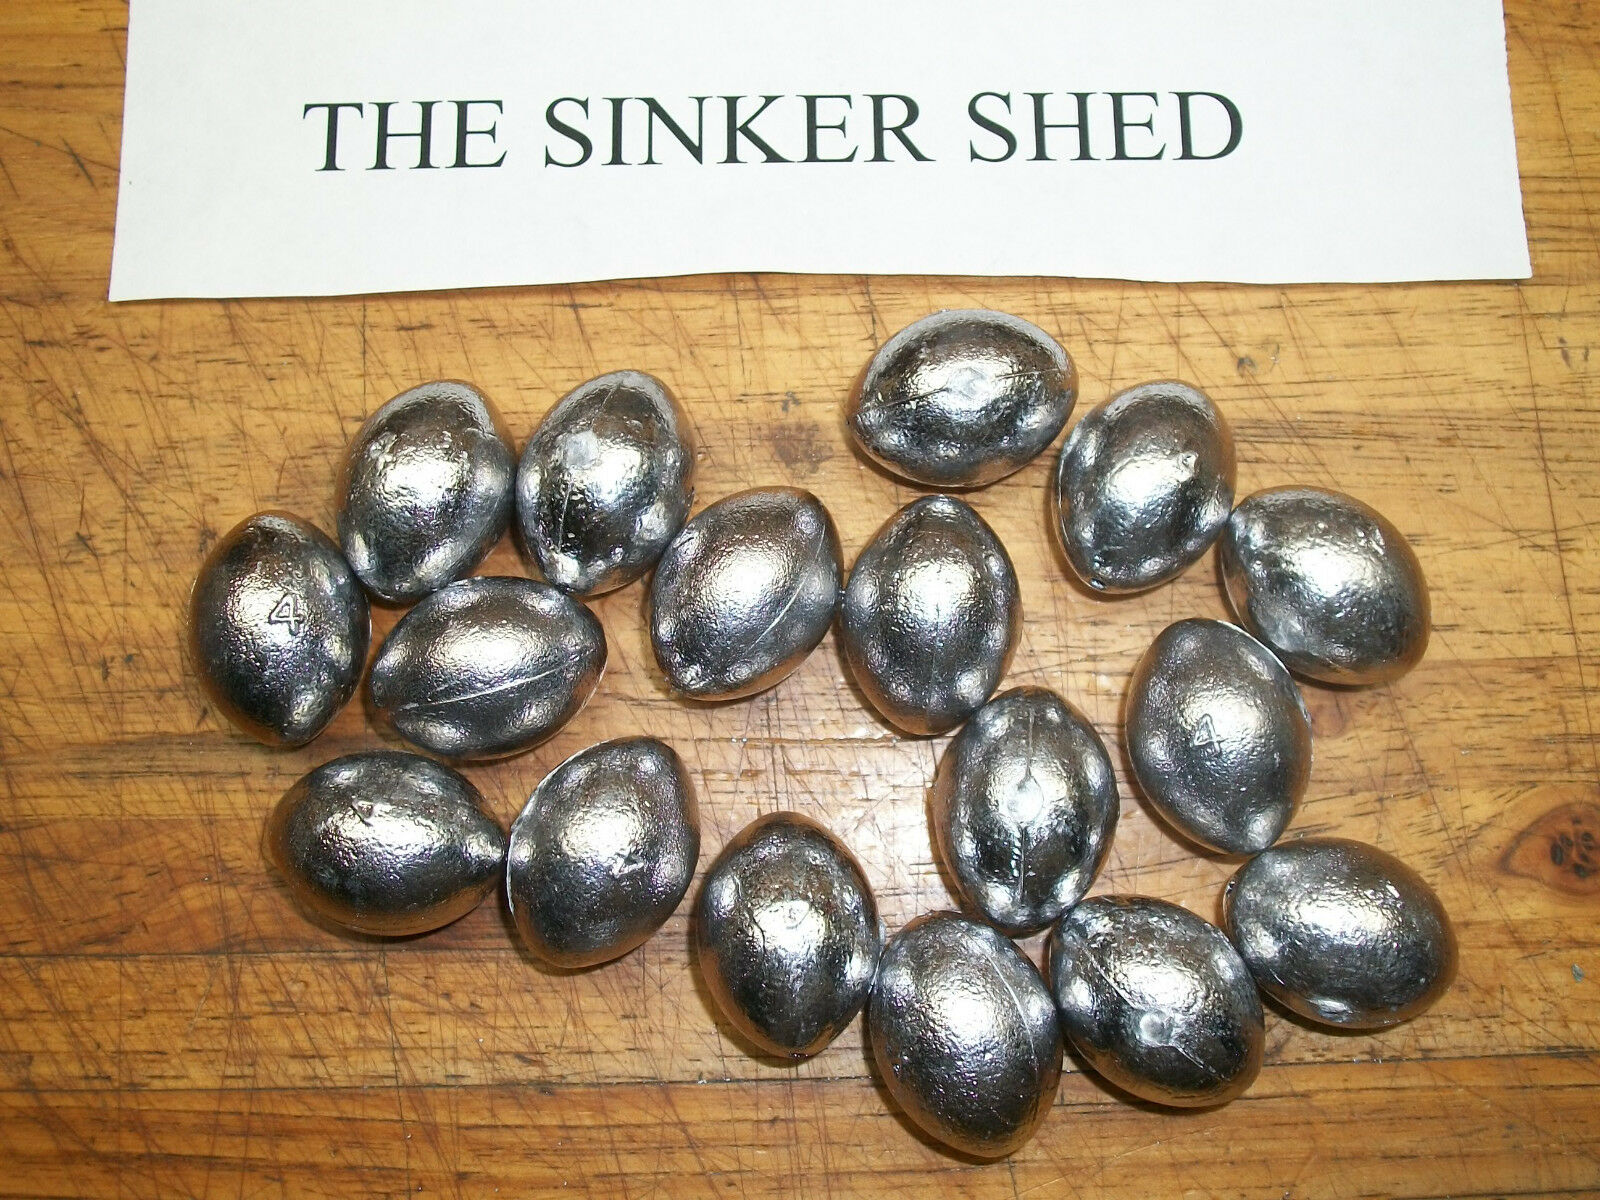 4 oz egg slip sinkers  - quantity of 6 12 25 50 100 240 - FREE SHIPPING